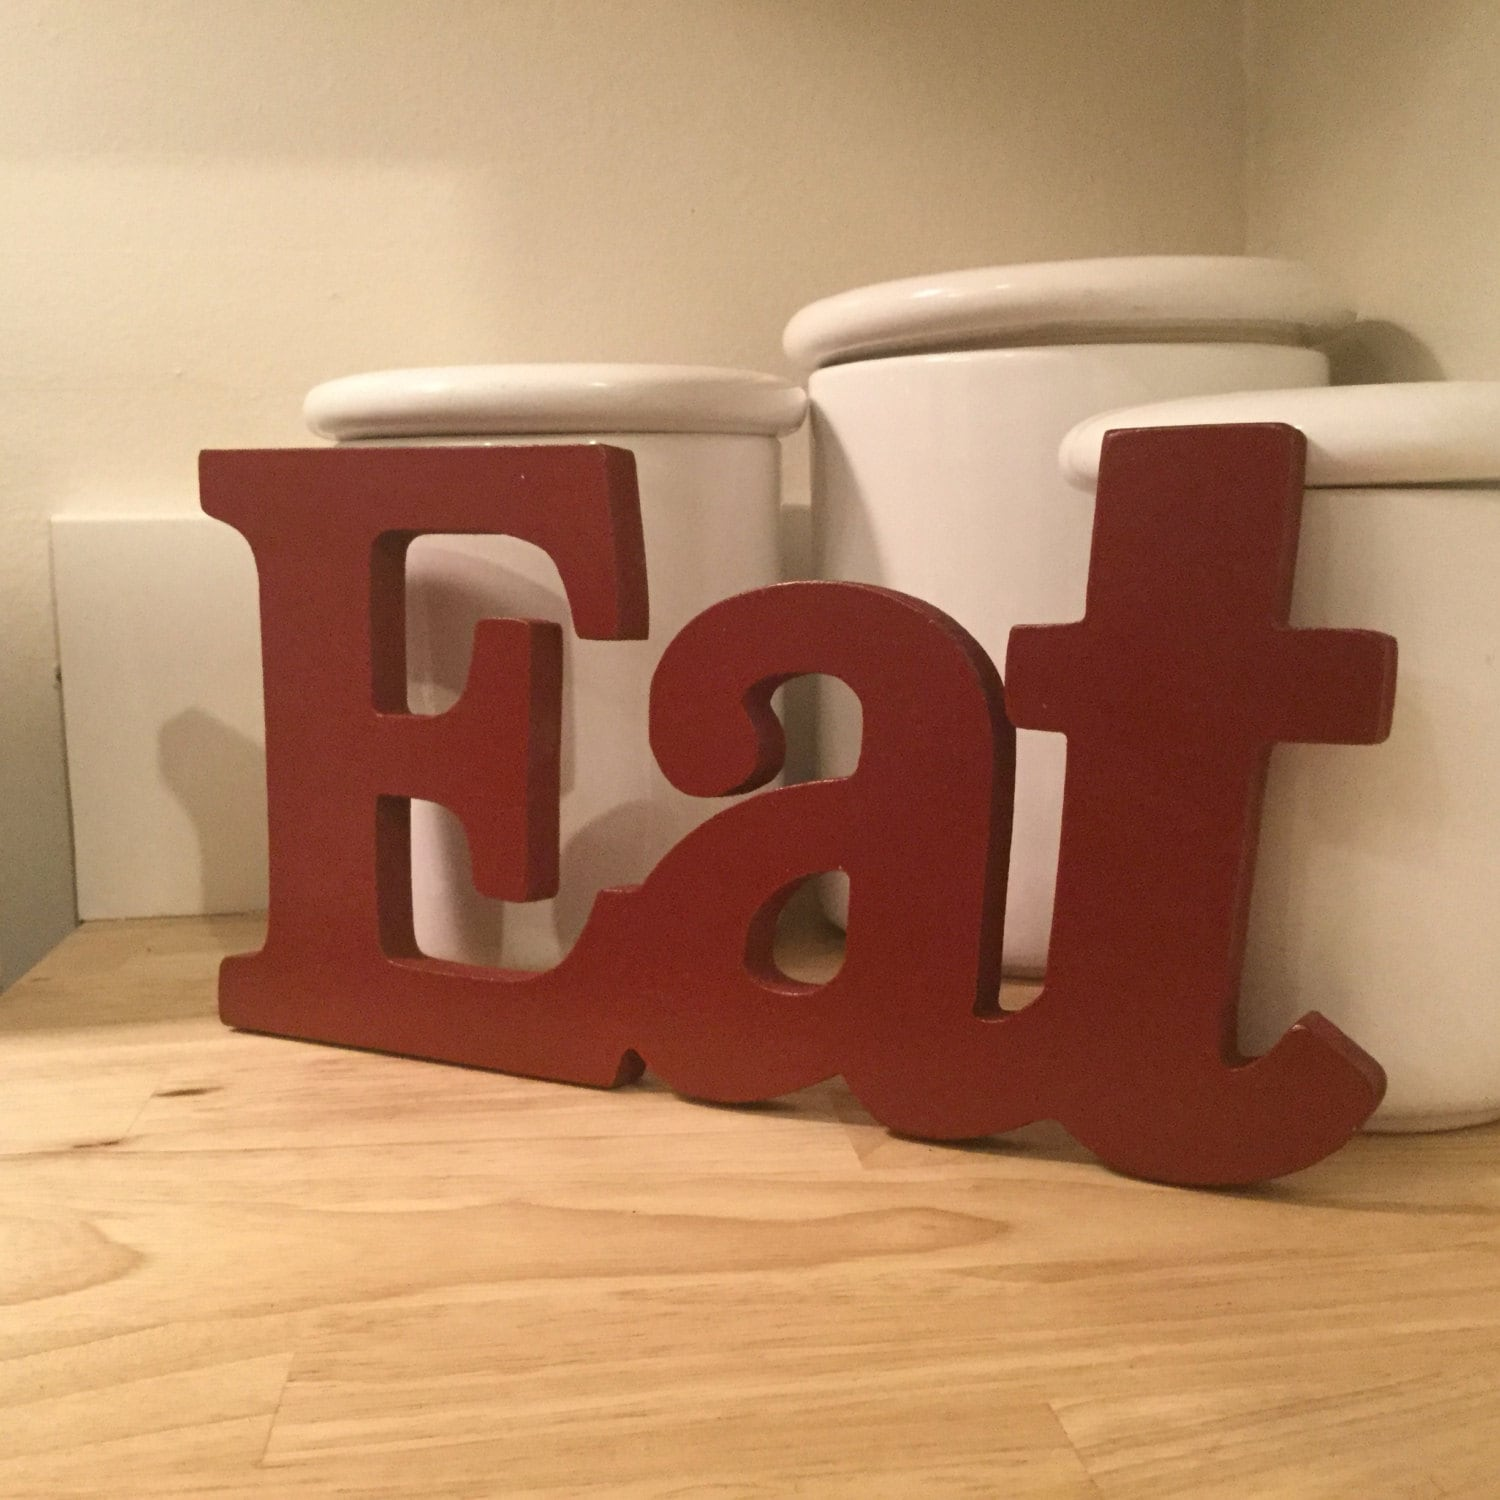 eat wood letters free standing wood letters unfinished wood letters kitchen decor eat word art word wall decor eat wooden word